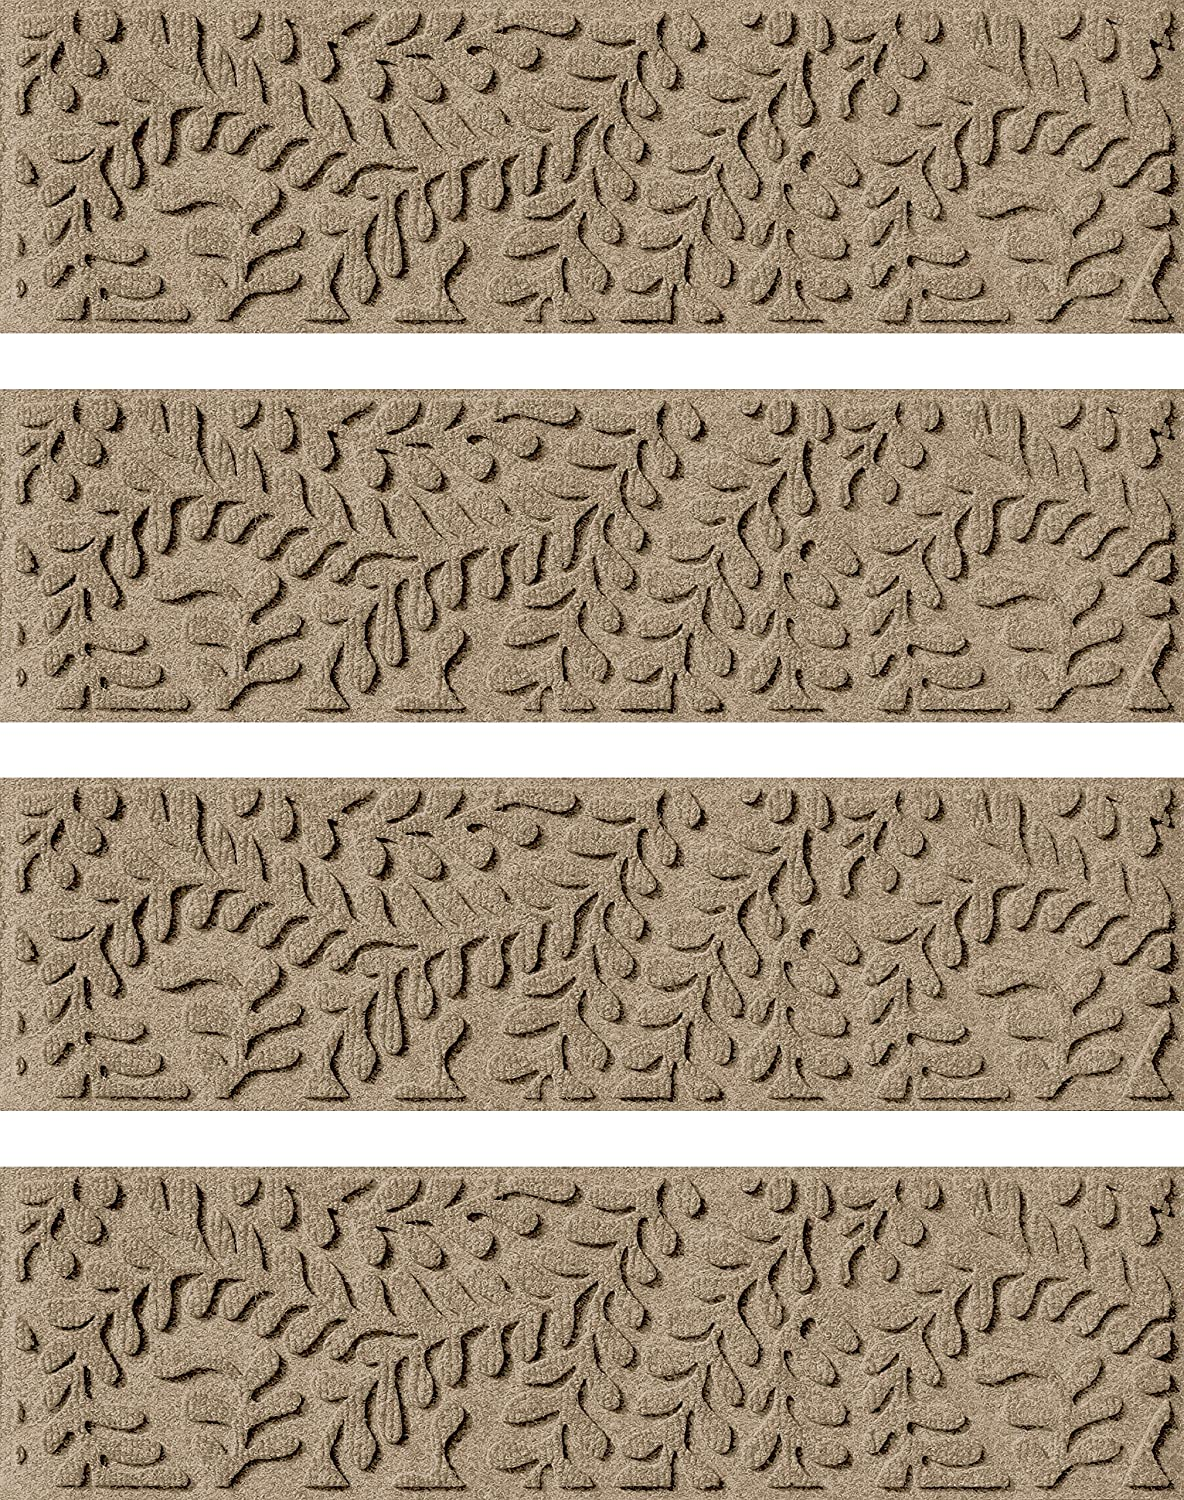 Bungalow Flooring Waterhog Indoor Outdoor Stair Treads, Set of 4, 8-1 2  x 30 , Skid Resistant, Easy to Clean, Catches Water and Debris, Boxwood Collection, Khaki Camel